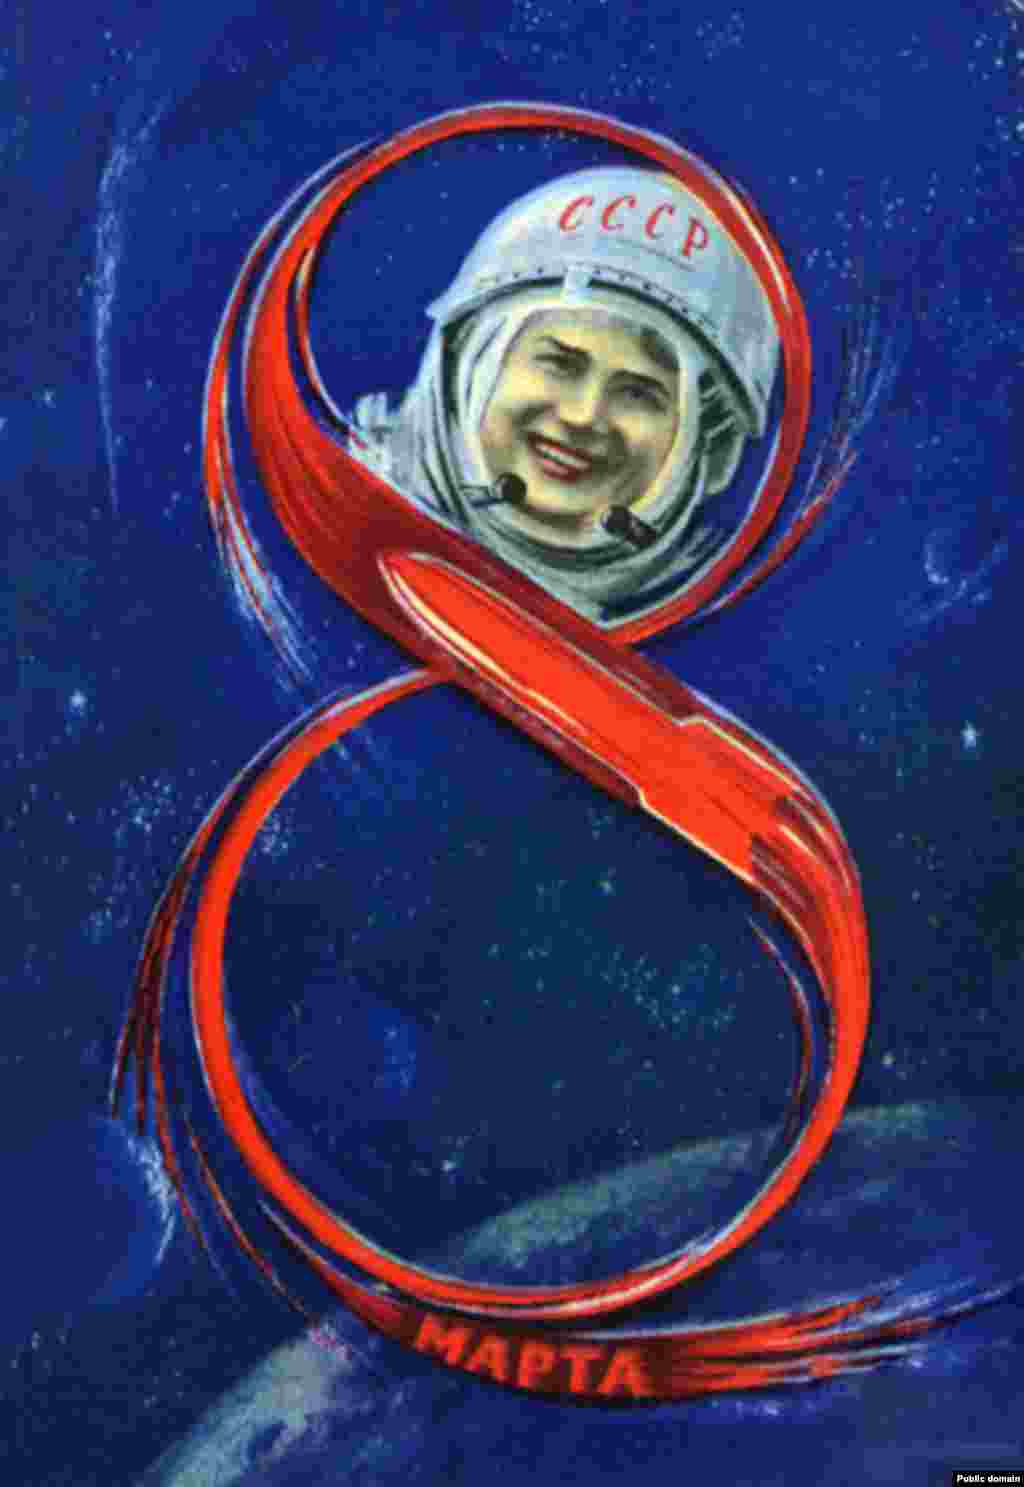 ...and others to the achievements of specific women, like Valentina Tereshkova, who in 1963 became the first woman in space.